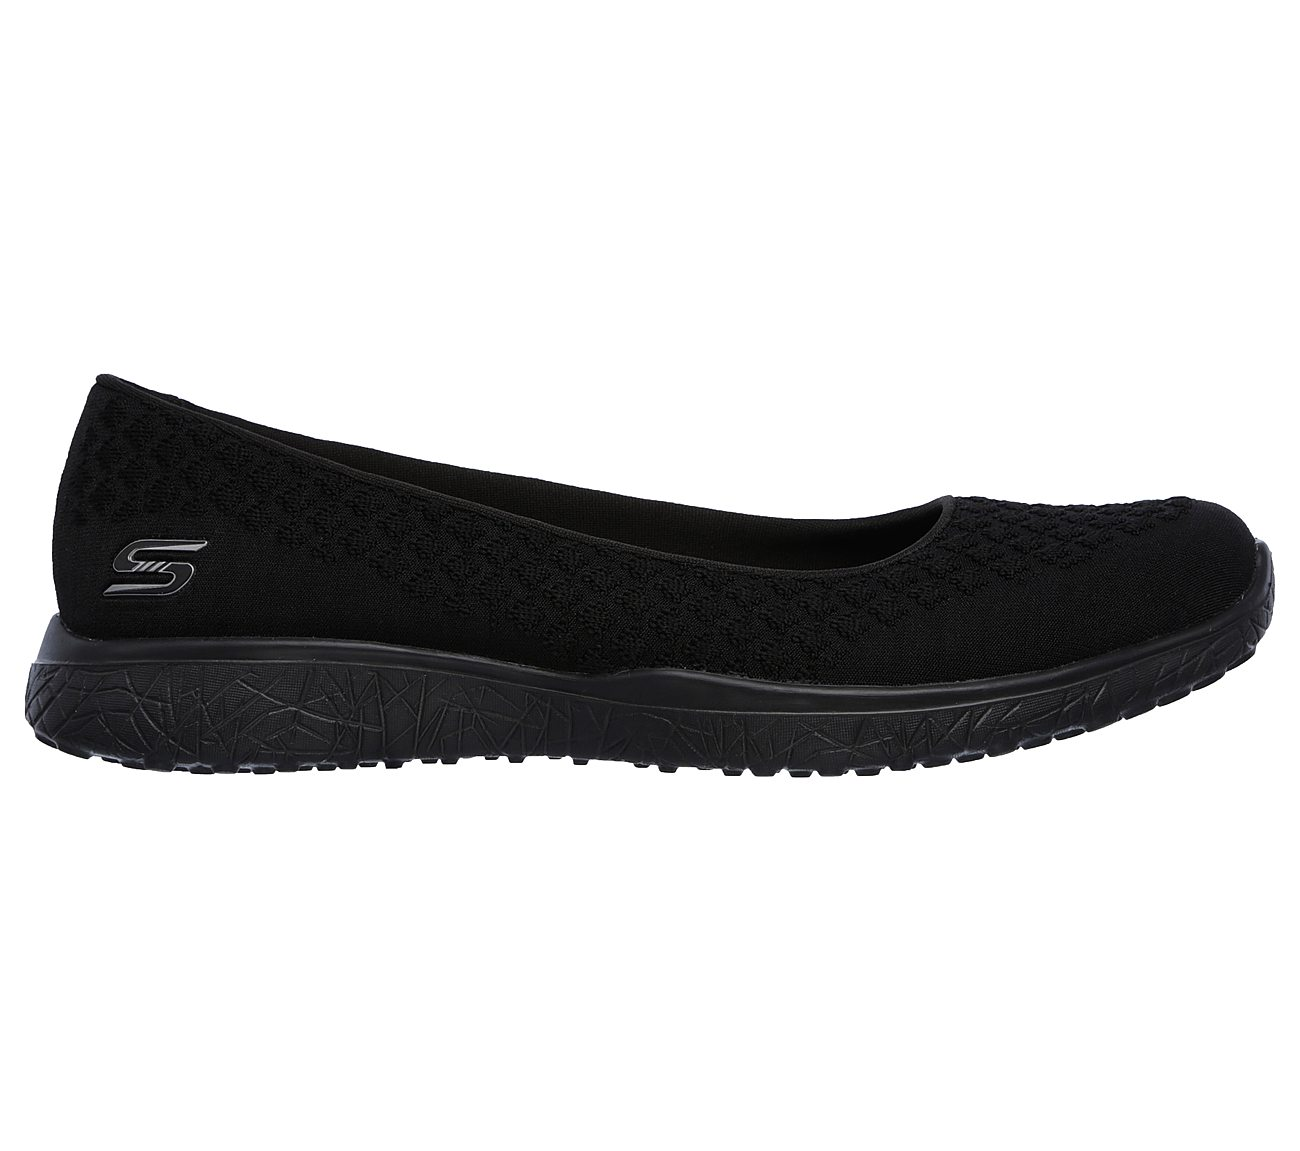 una vez absceso Hábil  buy > skechers microburst one up ballerina pump, Up to 75% OFF